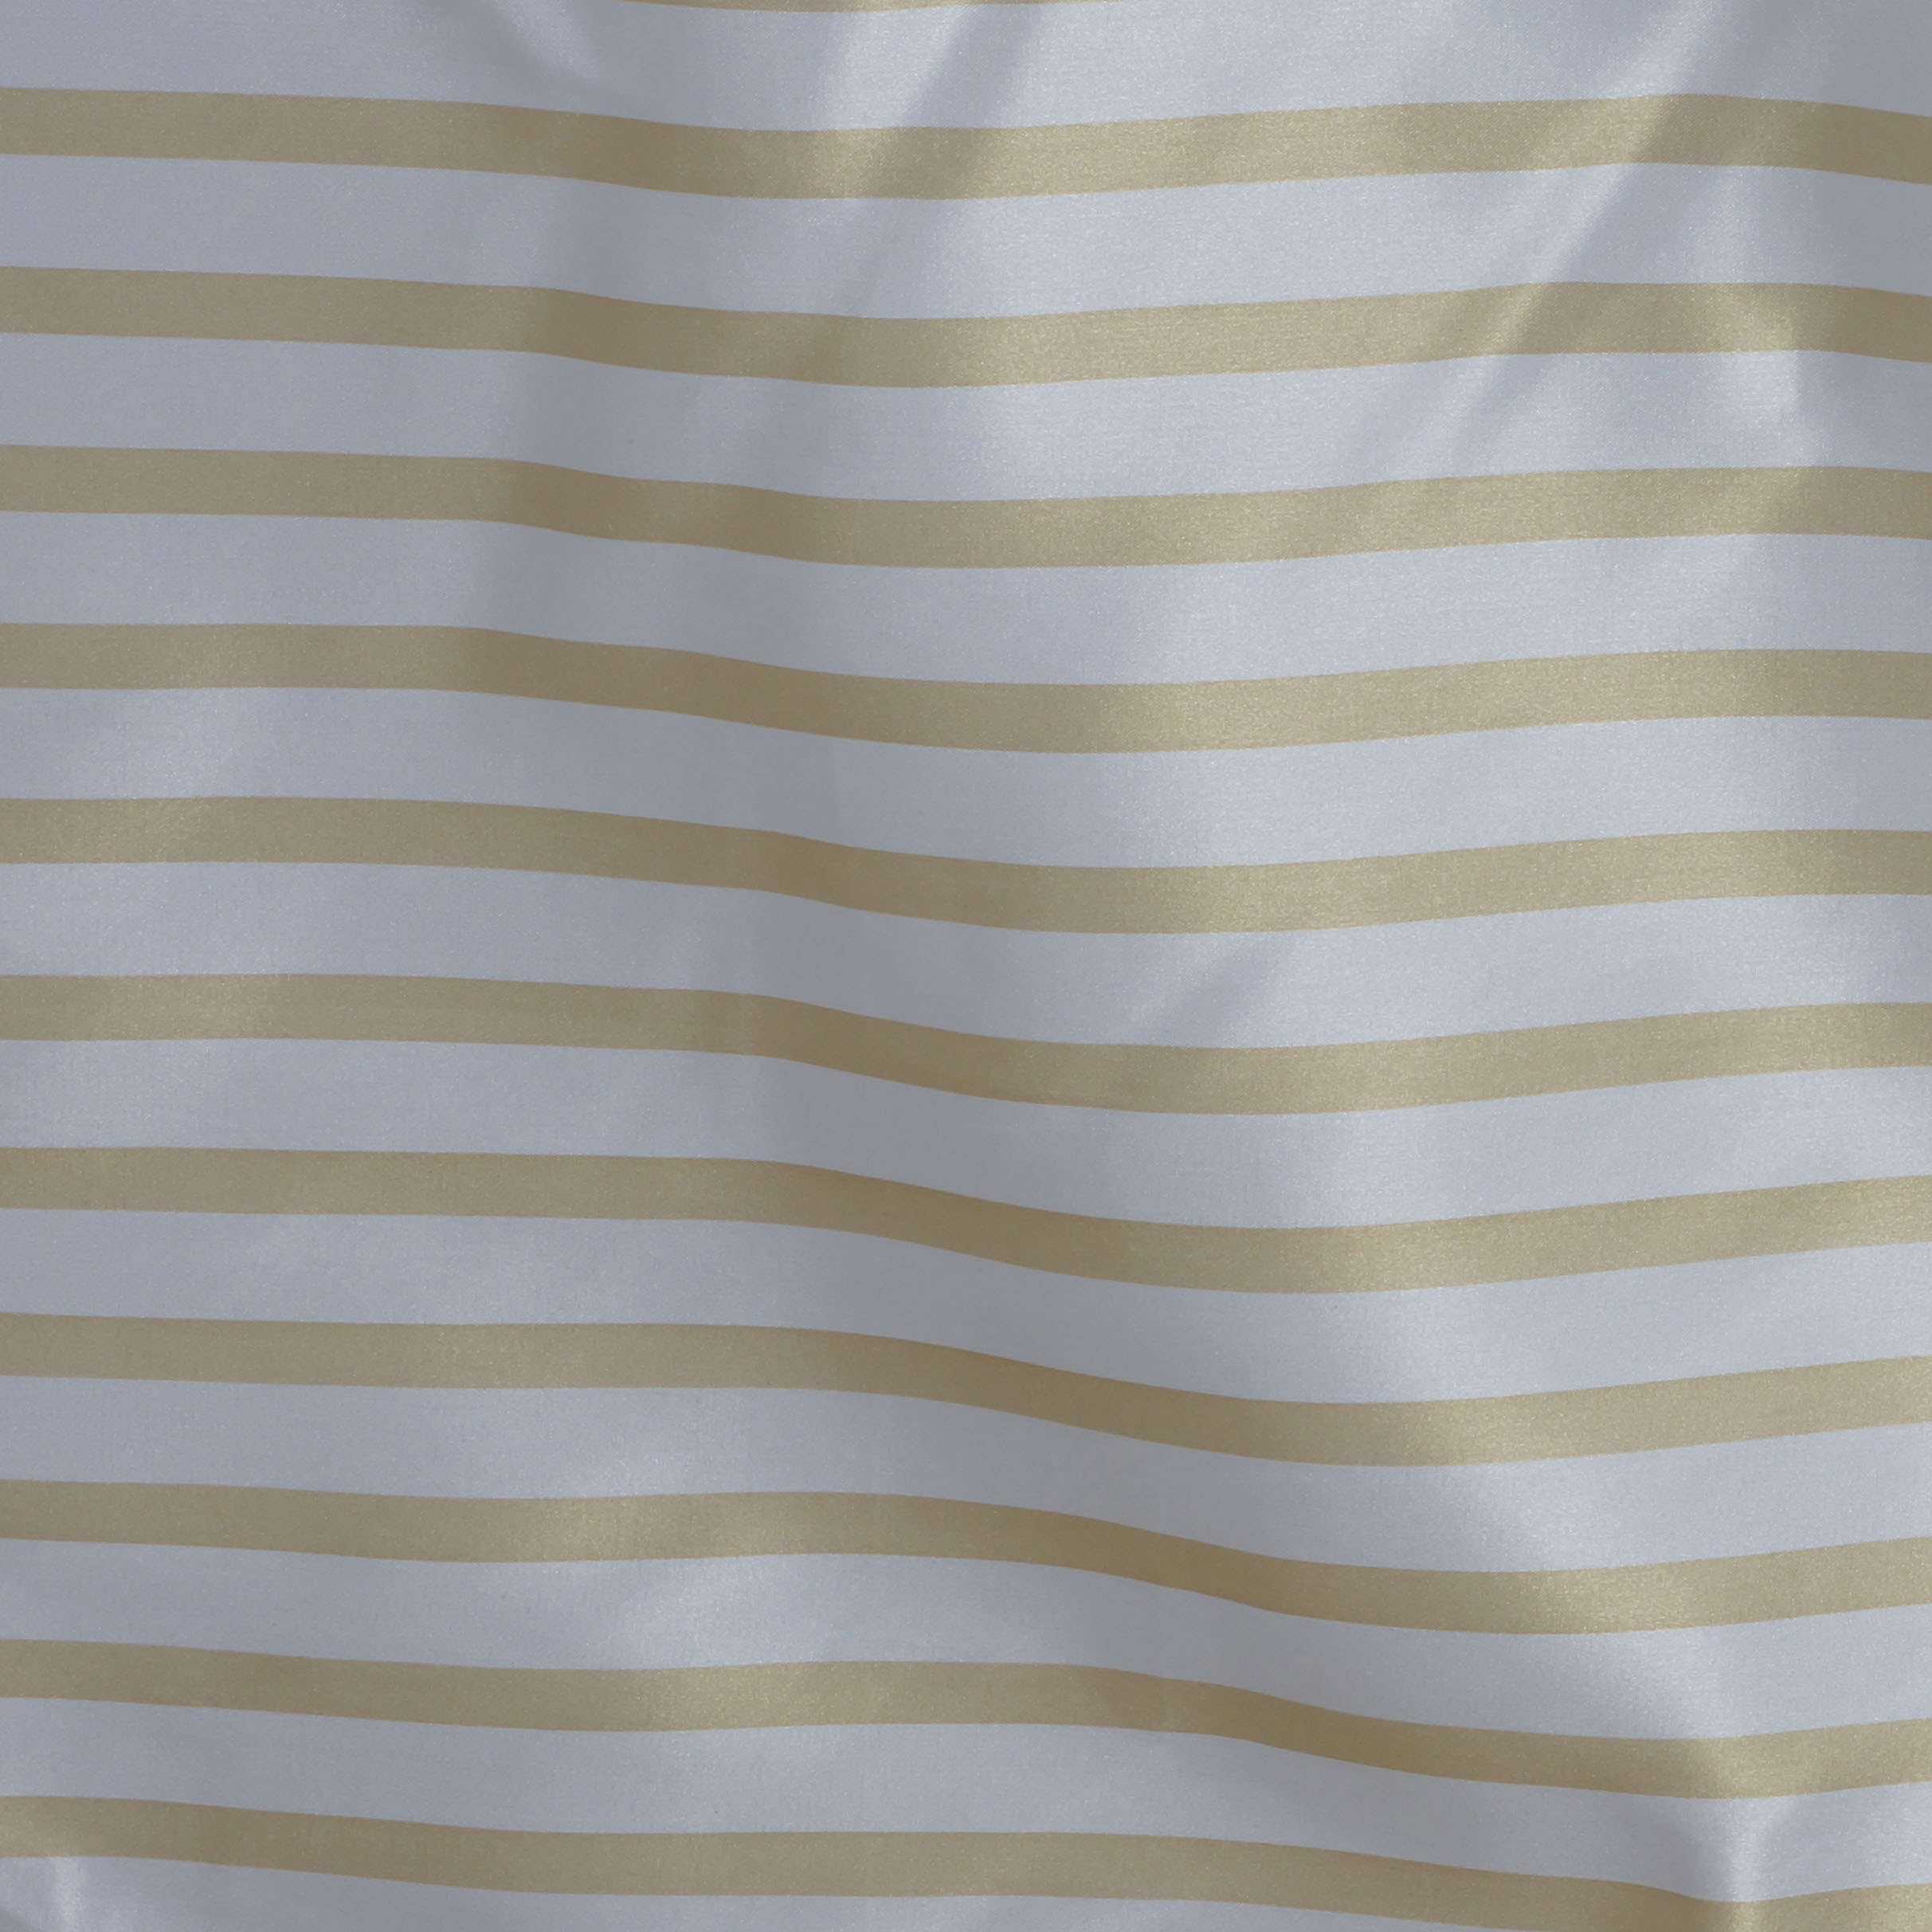 RECTANGULA-R-Striped-Satin-Tablecloth-Catering-Dinner-Wedding-Party-Linens-SALE thumbnail 3